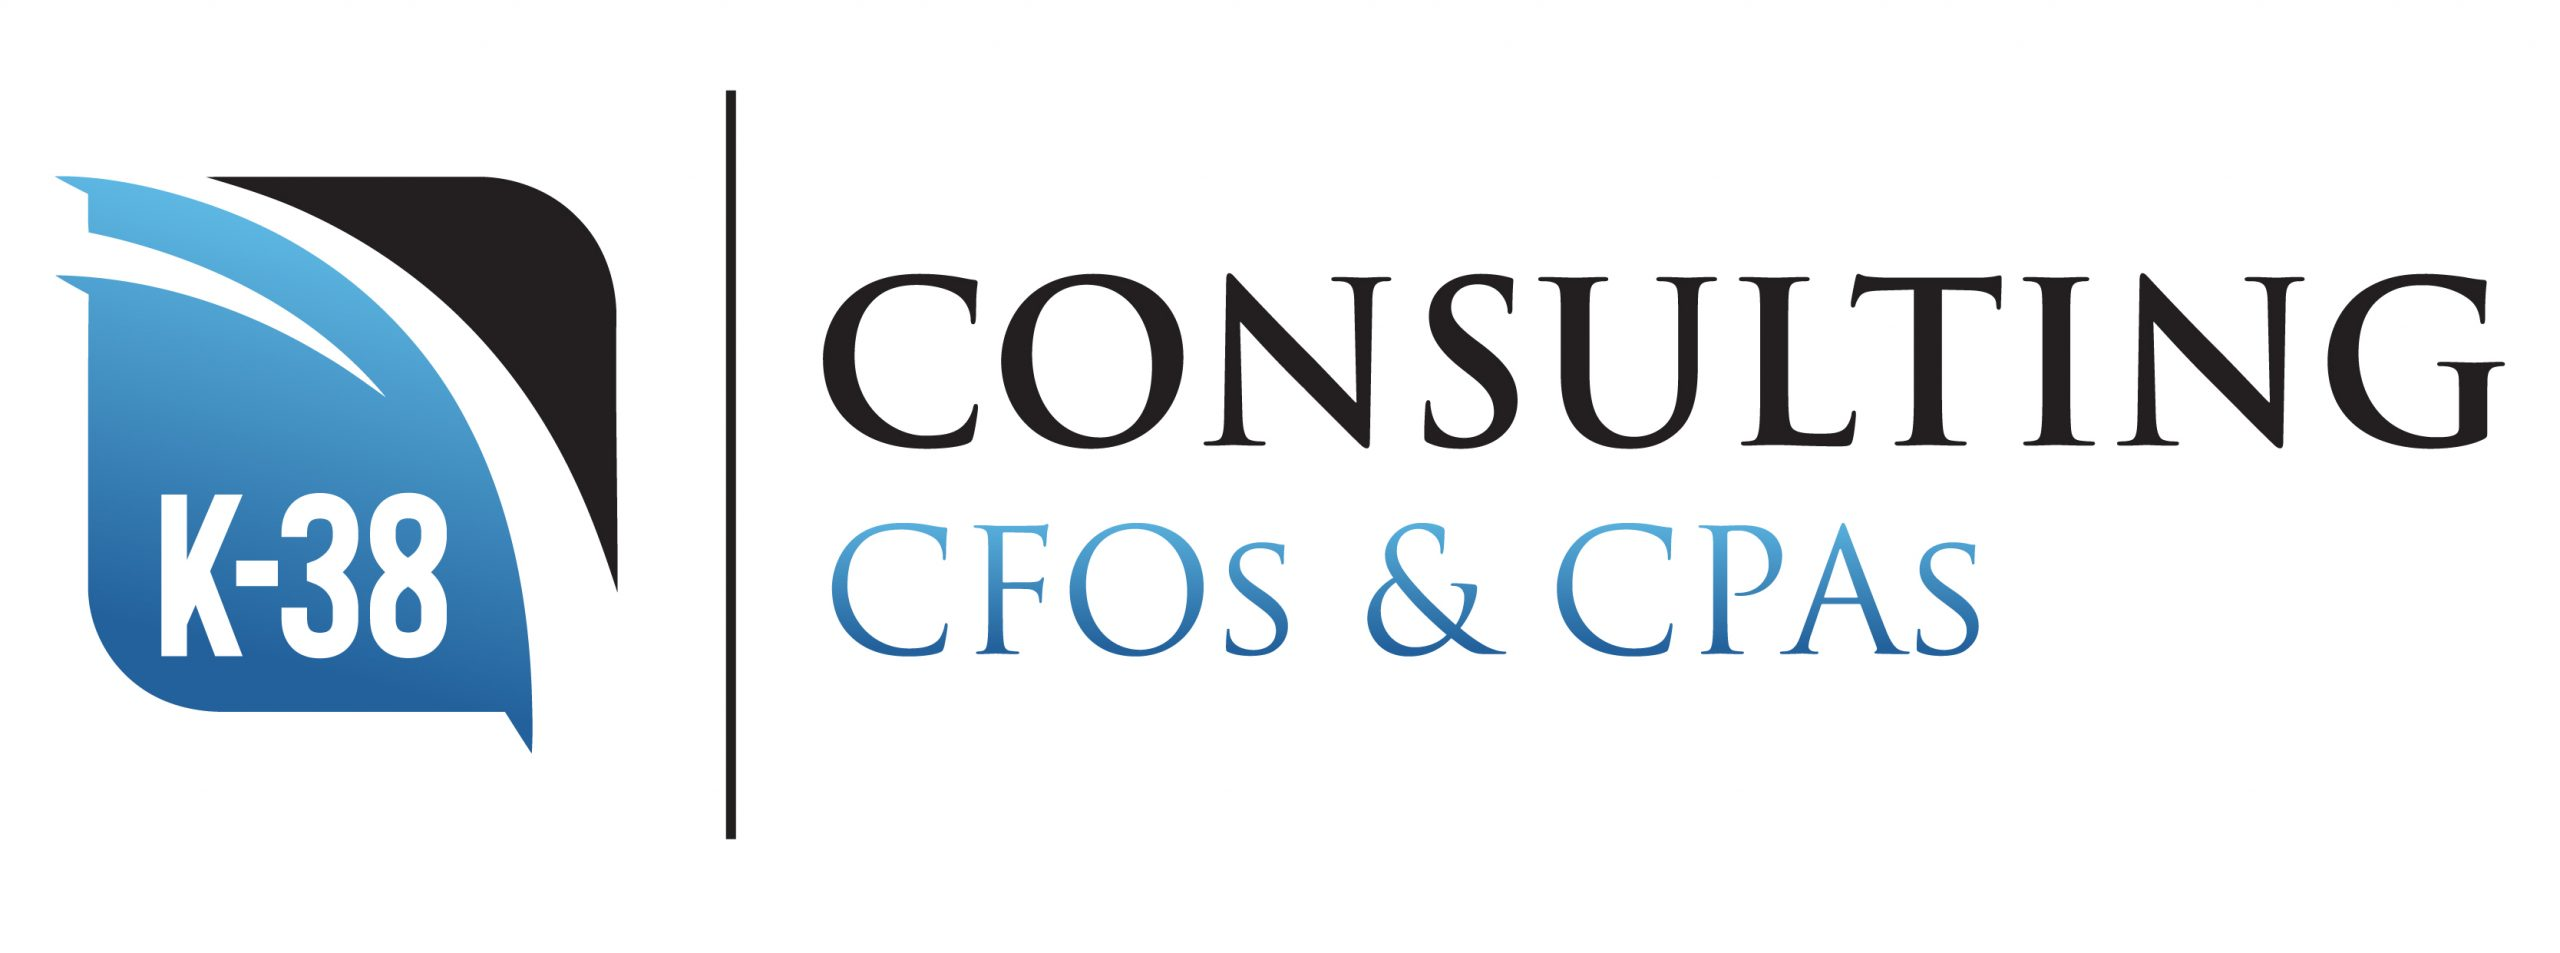 K38 Consulting Launches Raleigh, NC Part-Time Controller Services and Raleigh, NC SOX Audit Services 6